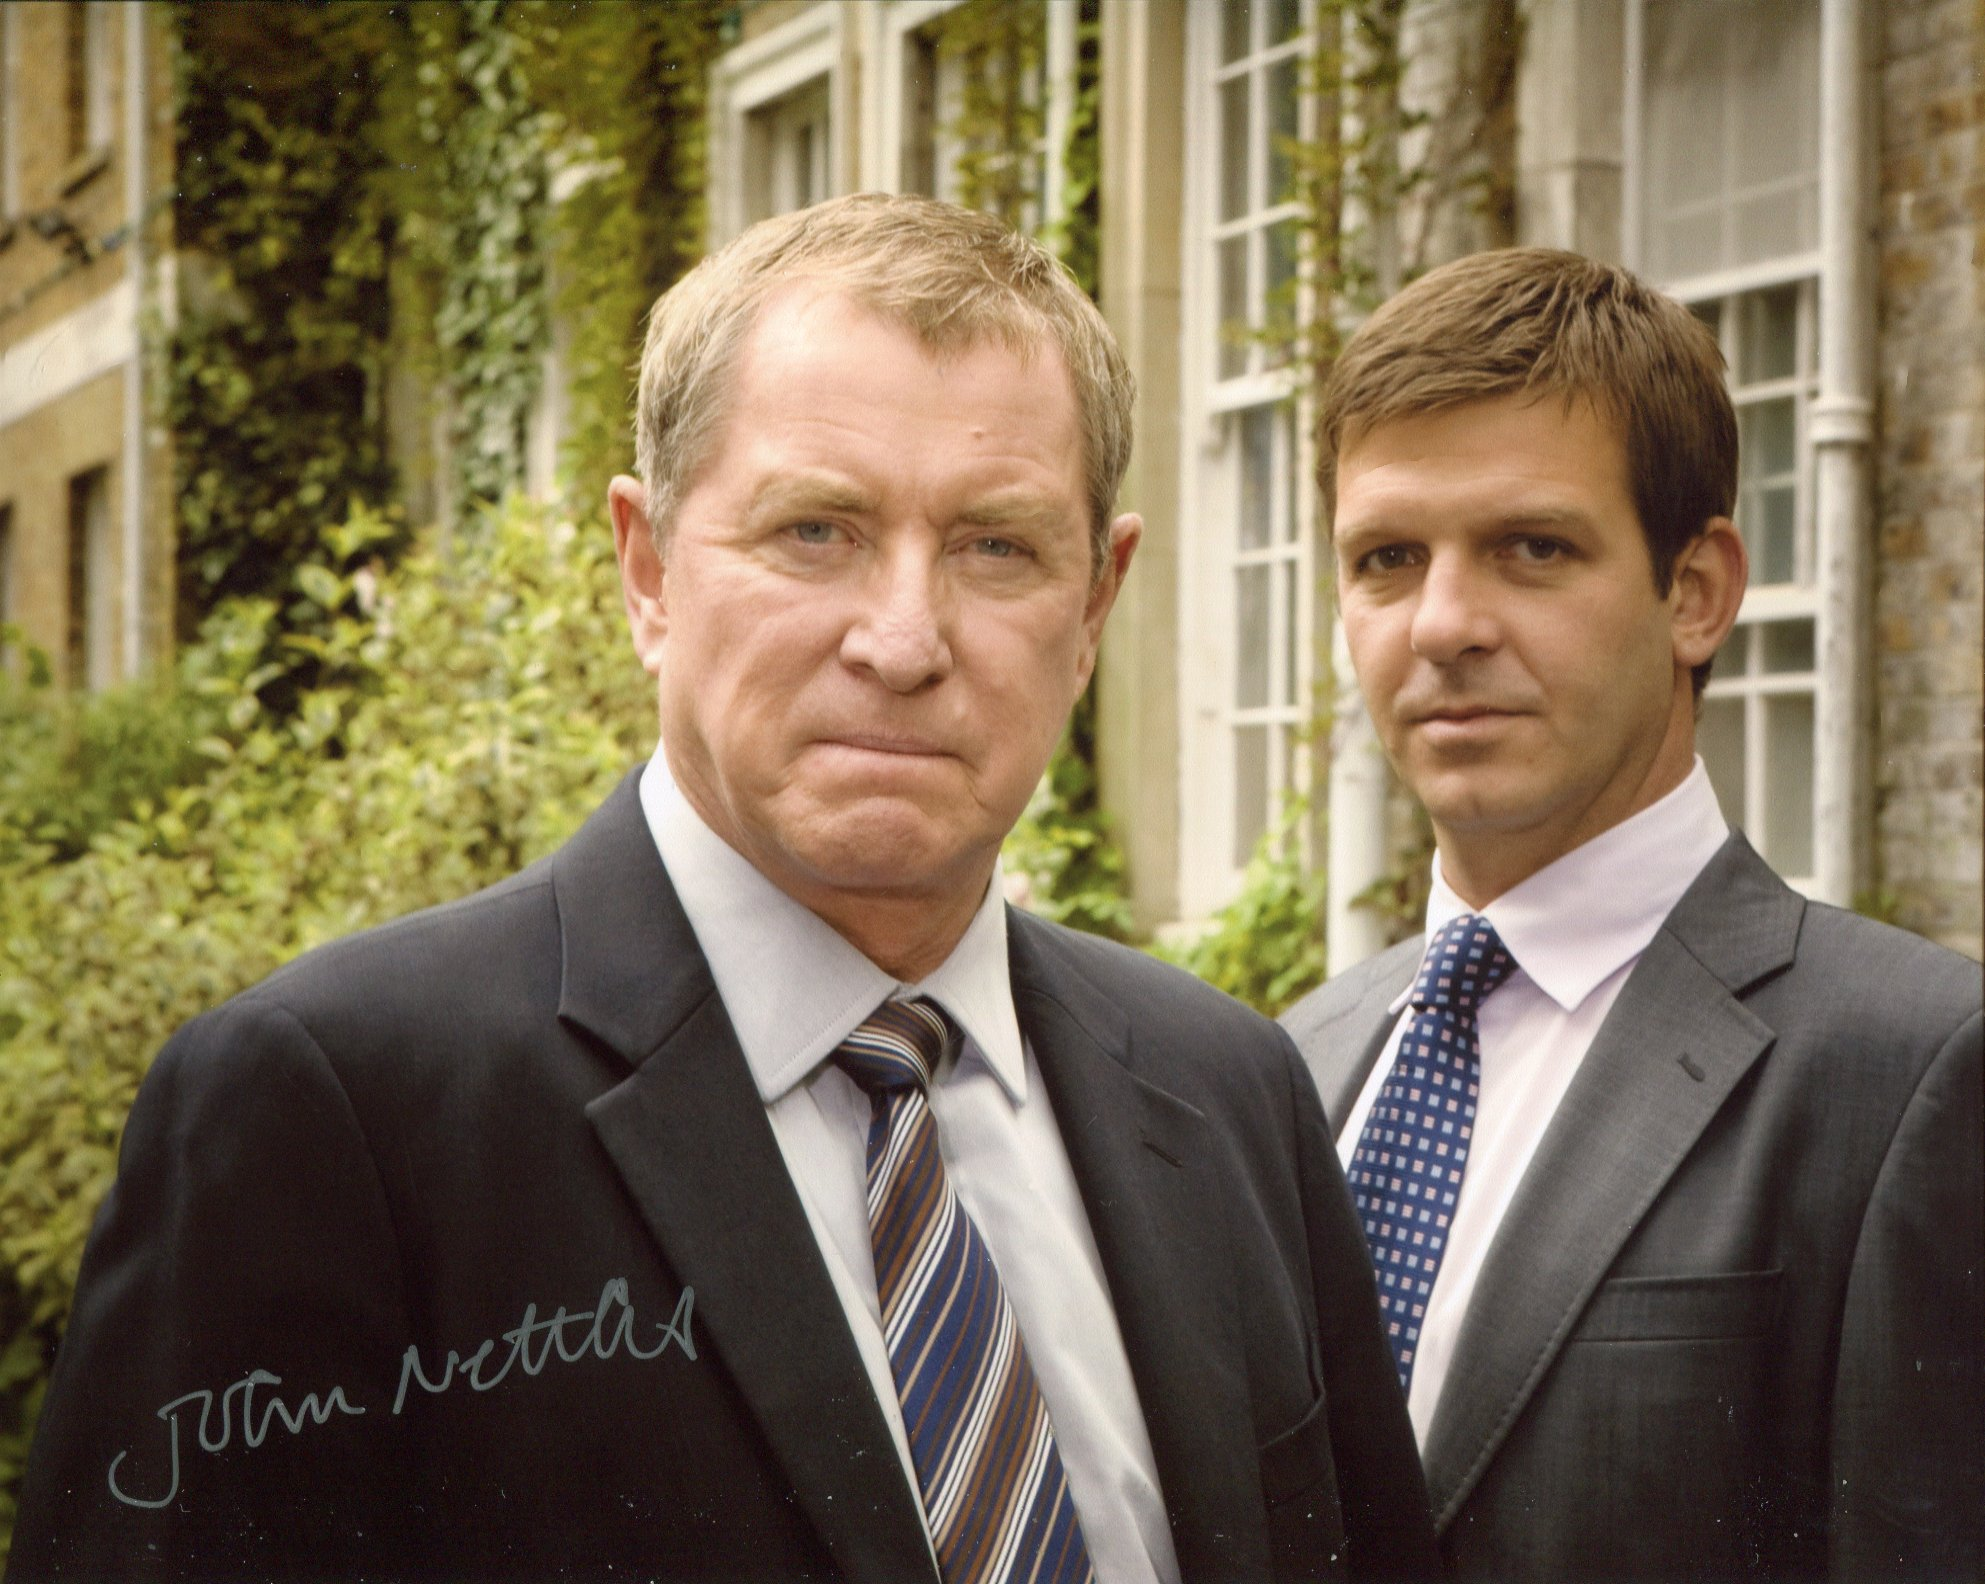 Midsomer Murders 8x10 photo signed by actor John Nettles as Inspector Barnaby. Good condition. All